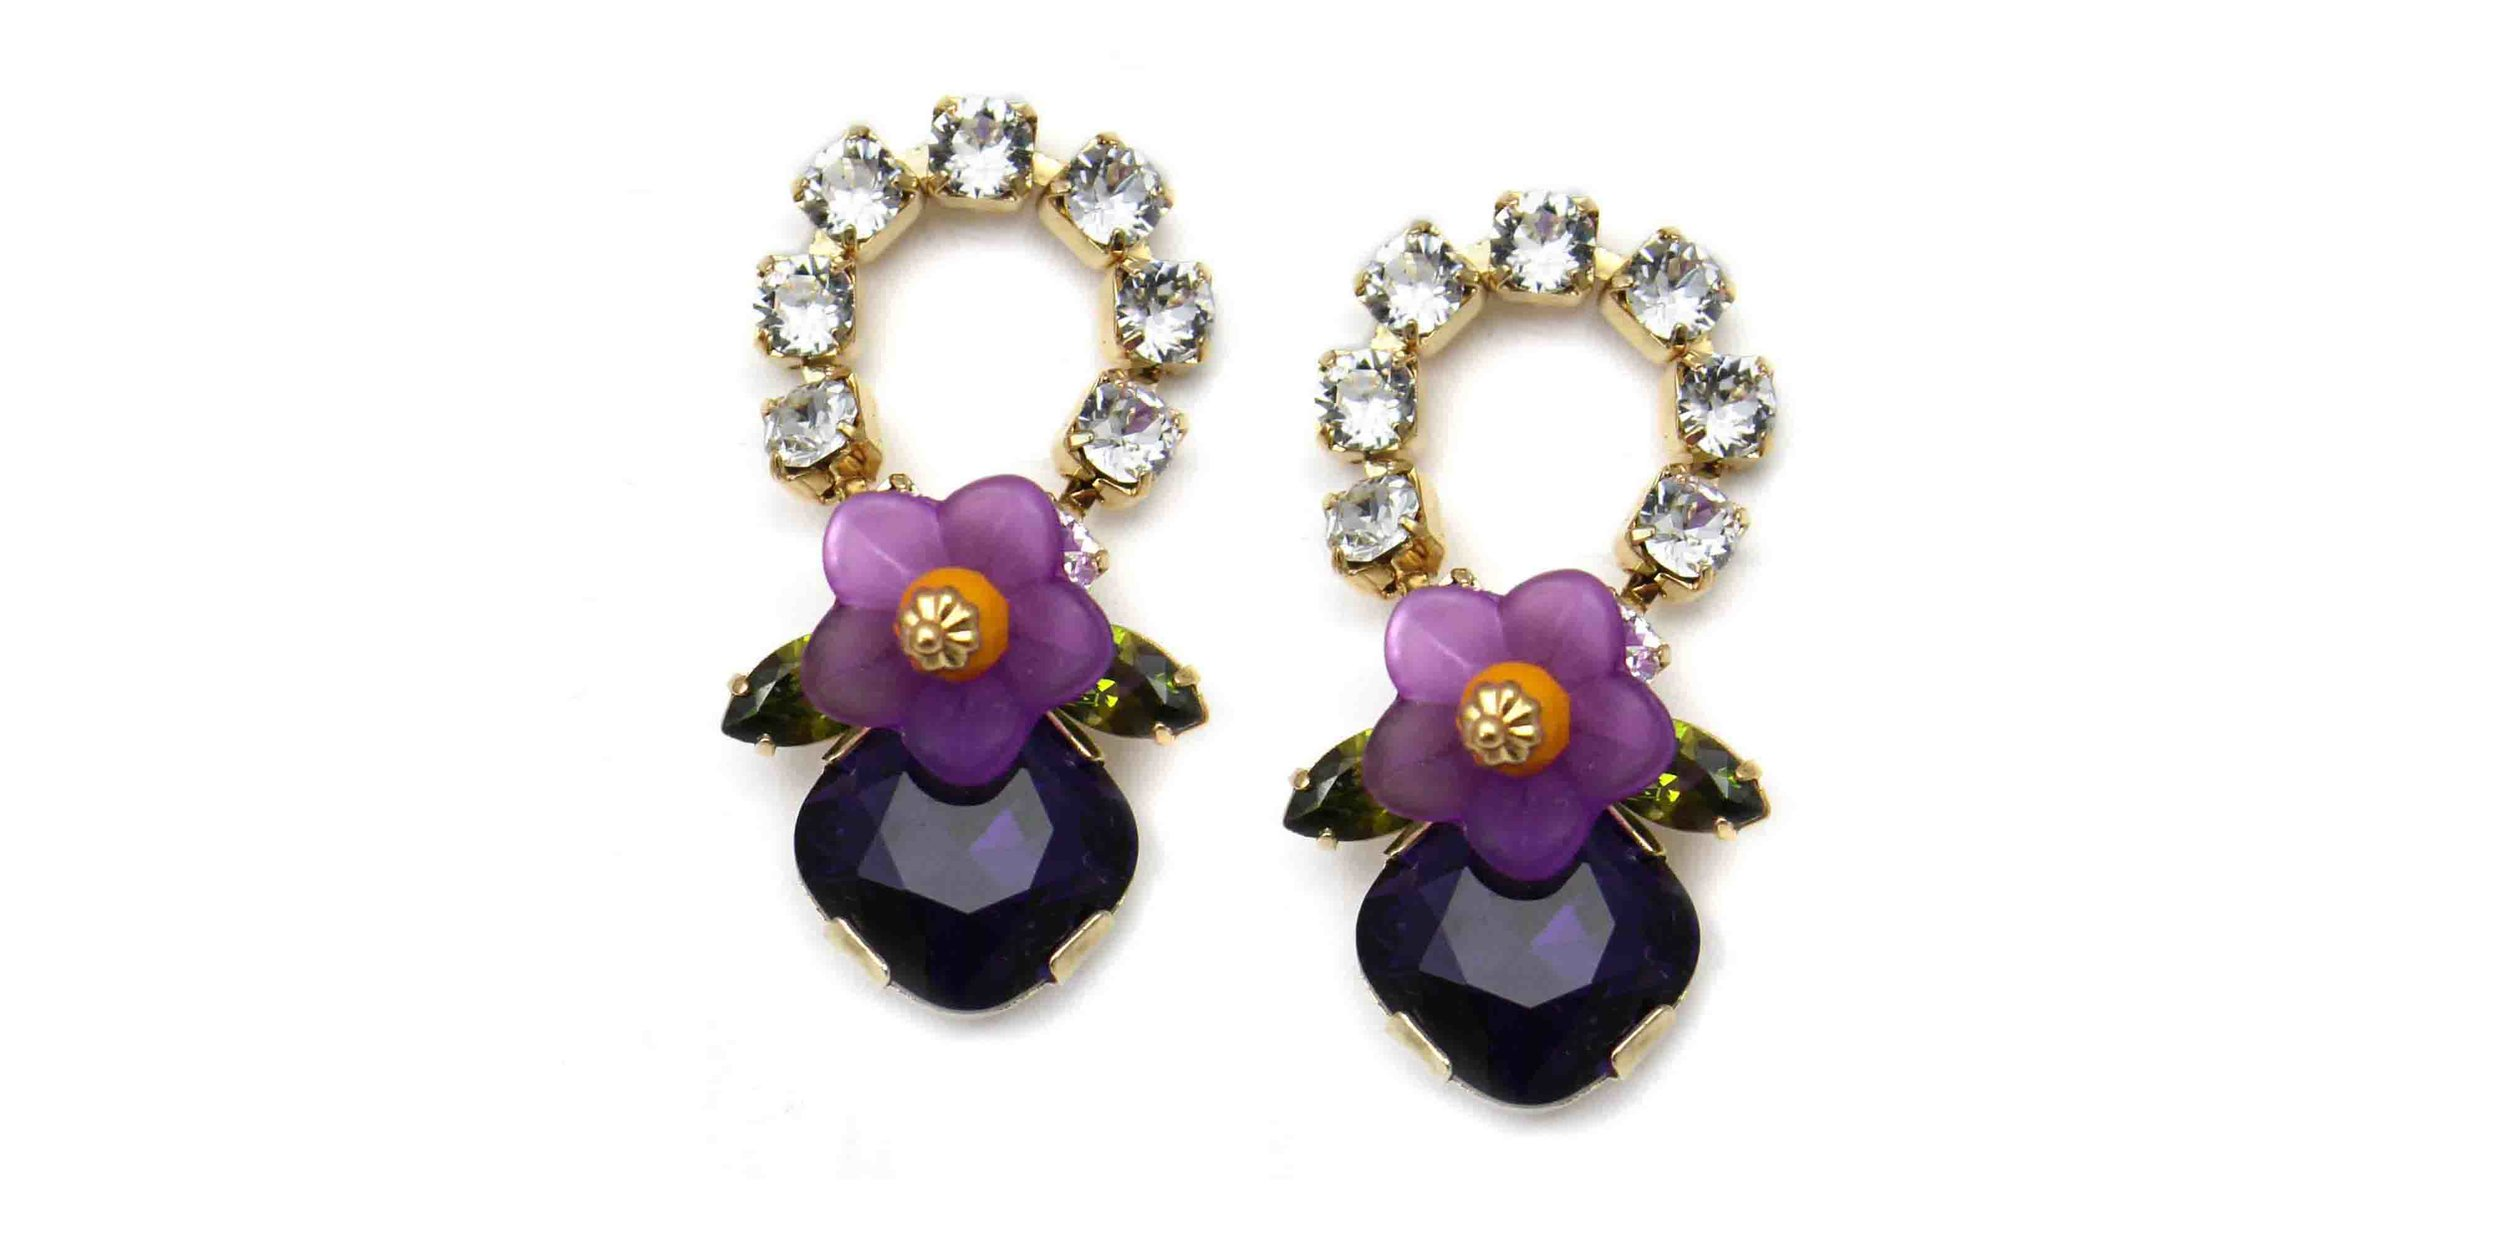 165CP Botanical Loop Earrings - CrystalPurple.jpg